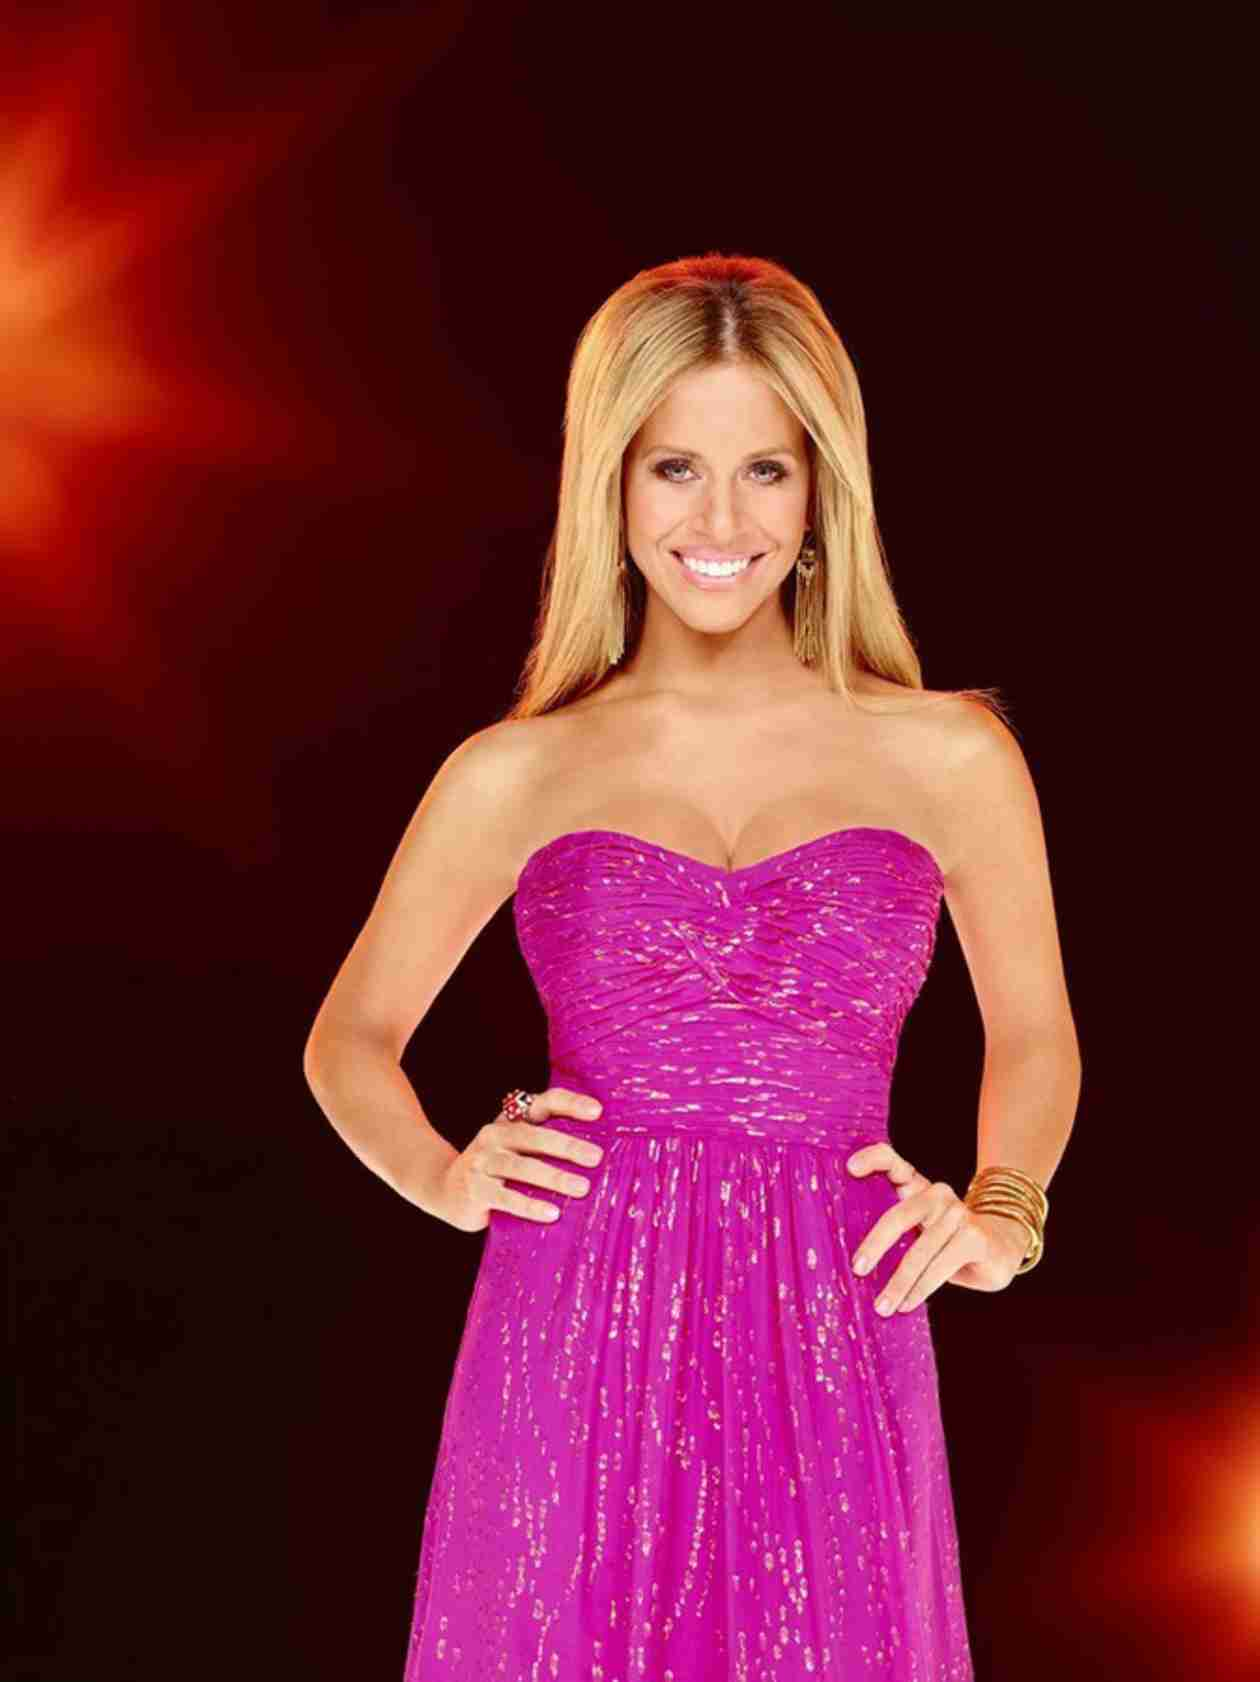 Why Didn't Dina Manzo Have a Christmas Dinner on RHONJ Season 6?